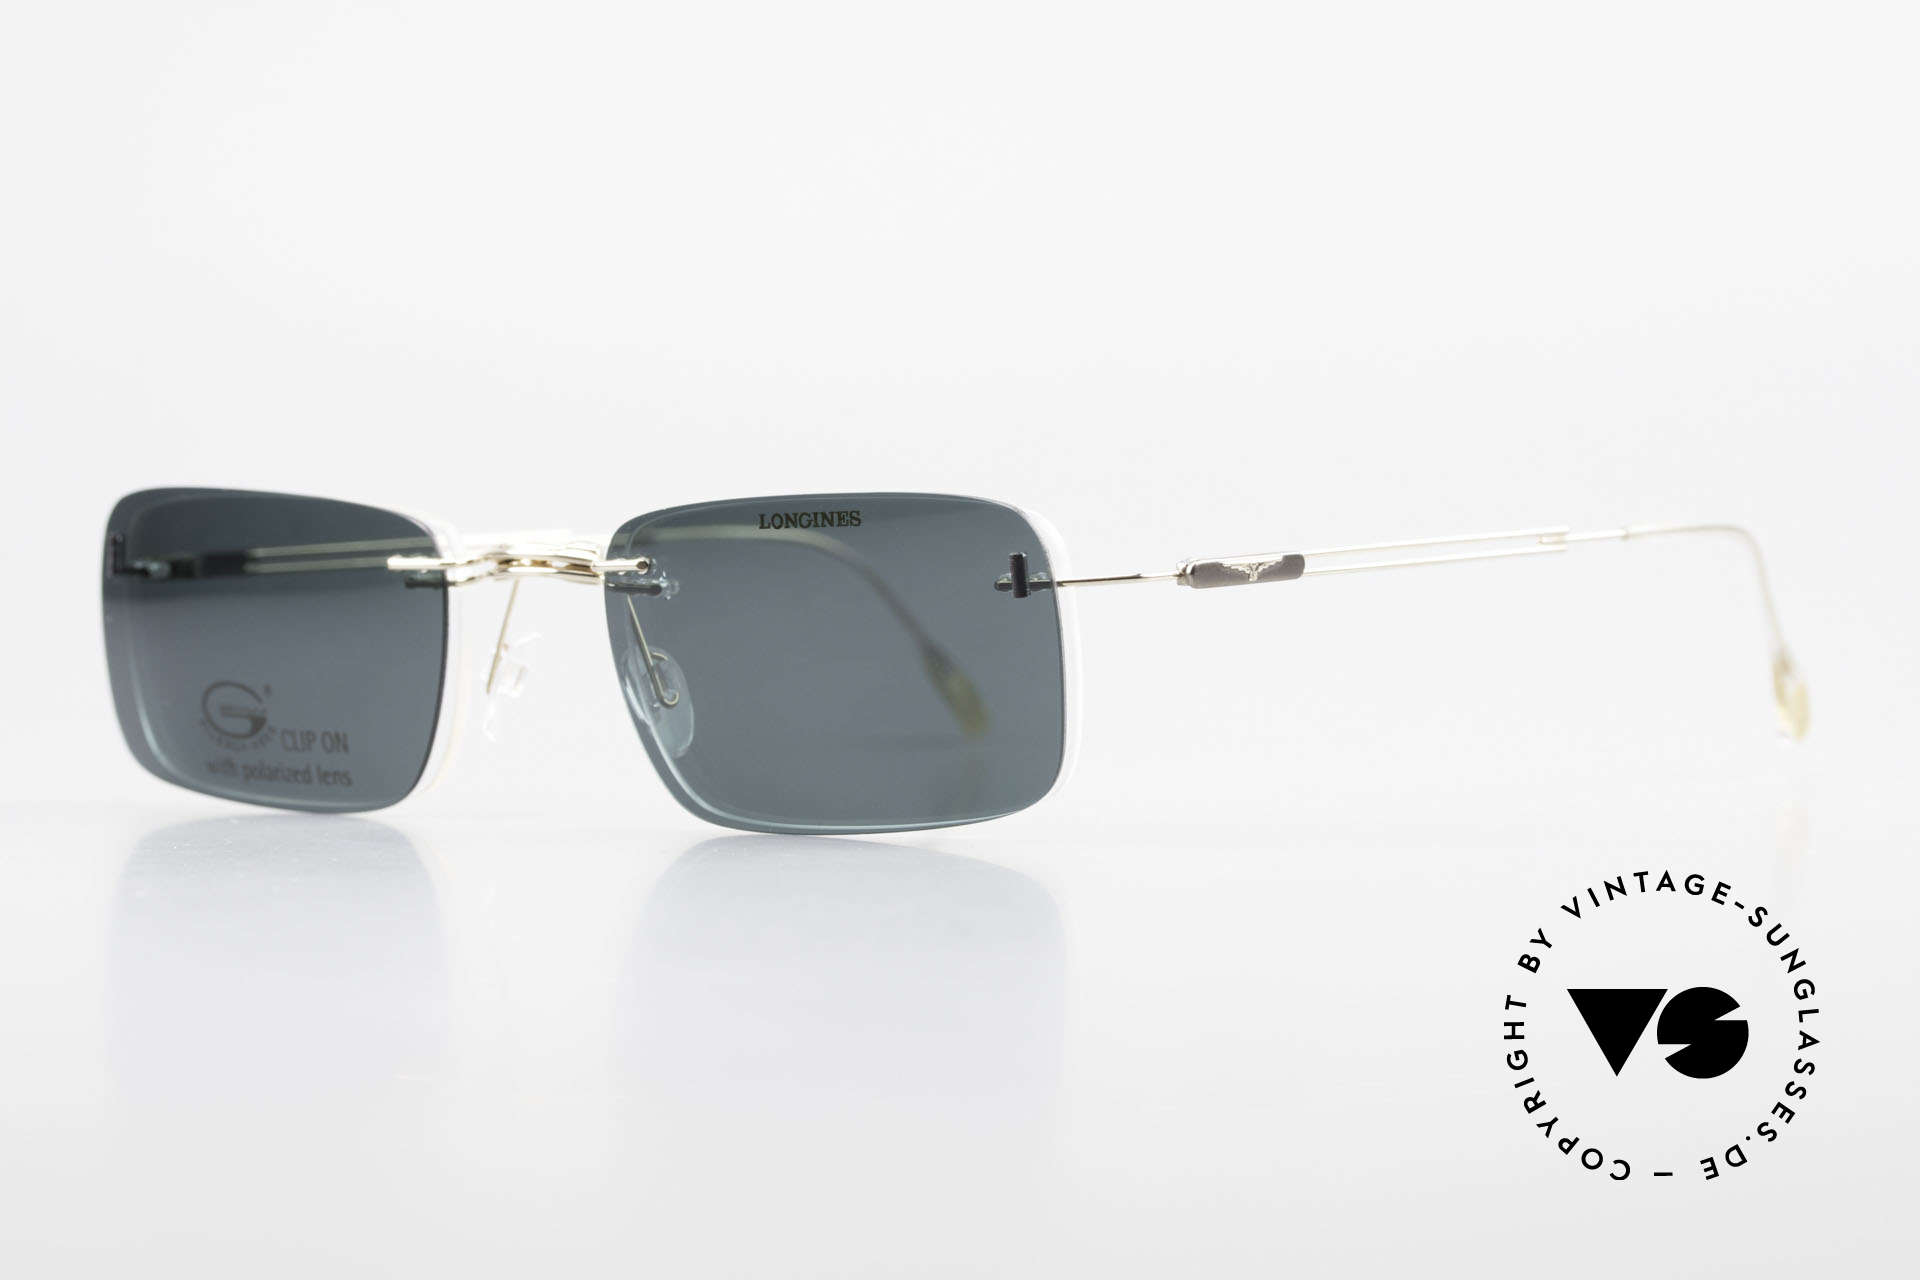 Longines 4367 Polarized Glasses Rimless 90s, Longines logo, the winged hourglass, on the temples, Made for Men